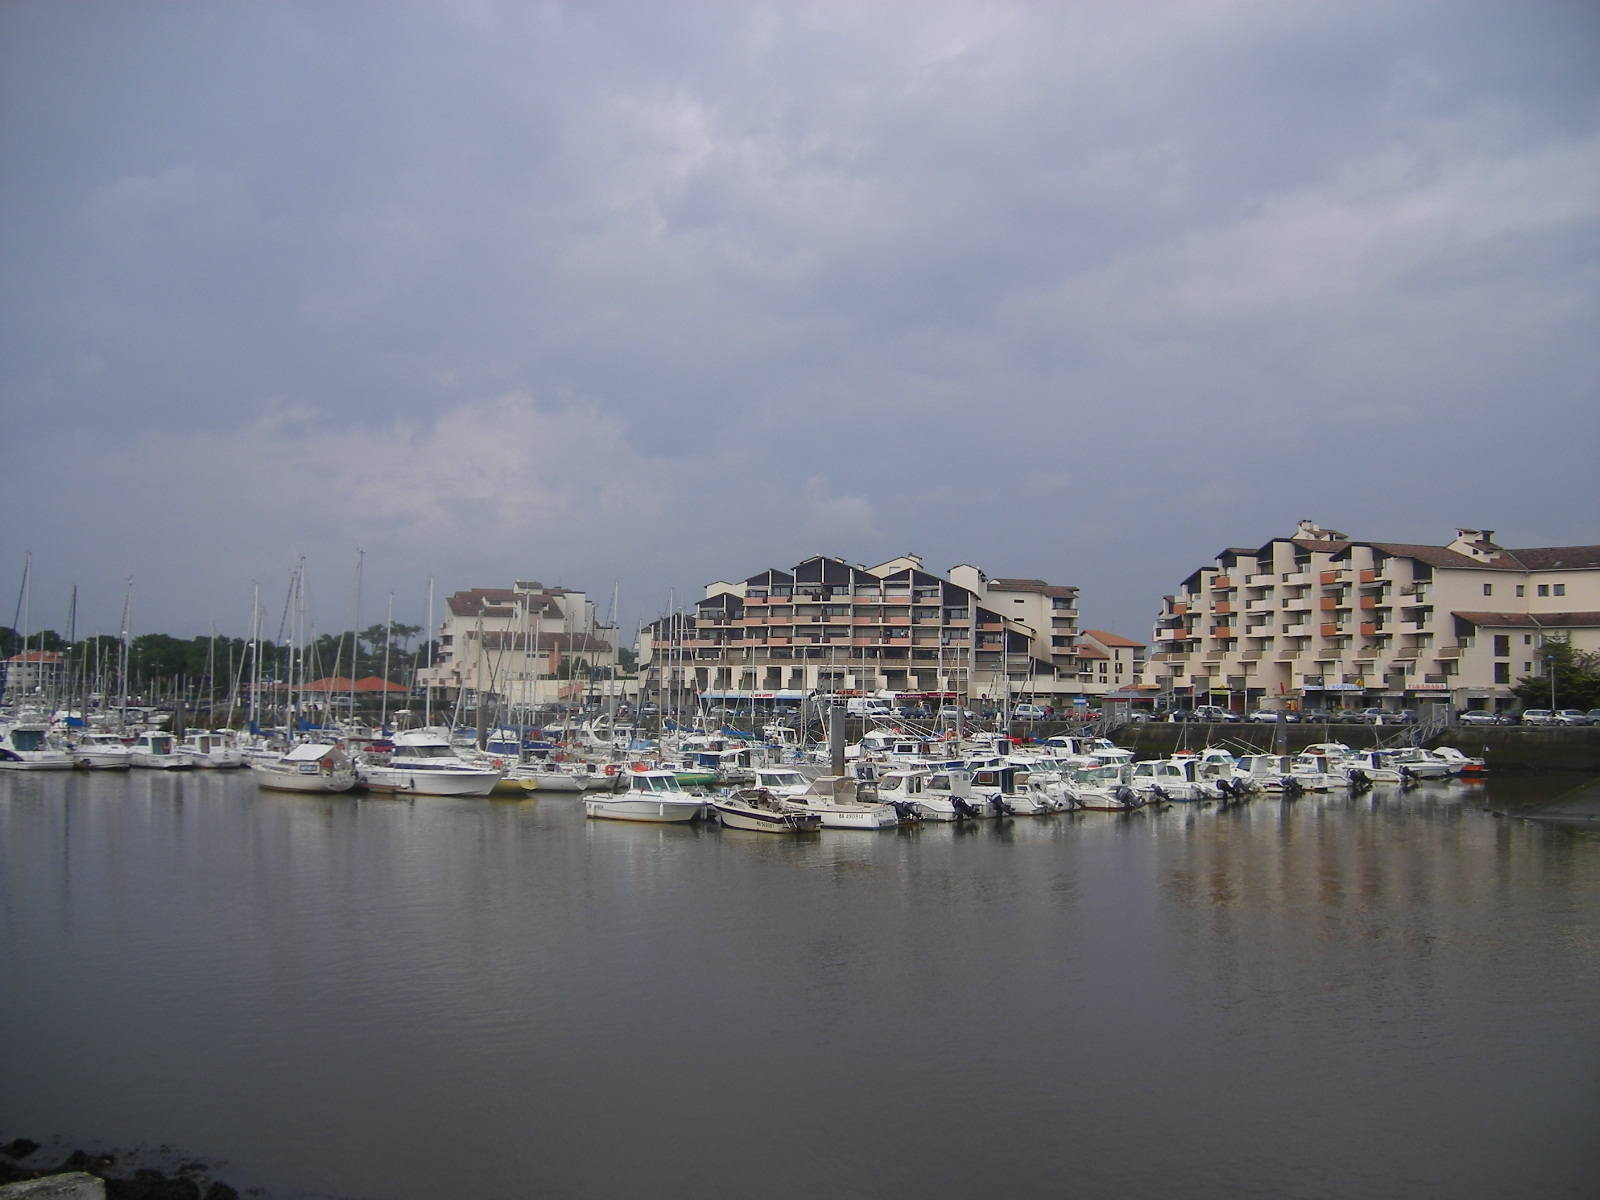 Capbreton France  City pictures : Capbreton, le port de plaisance